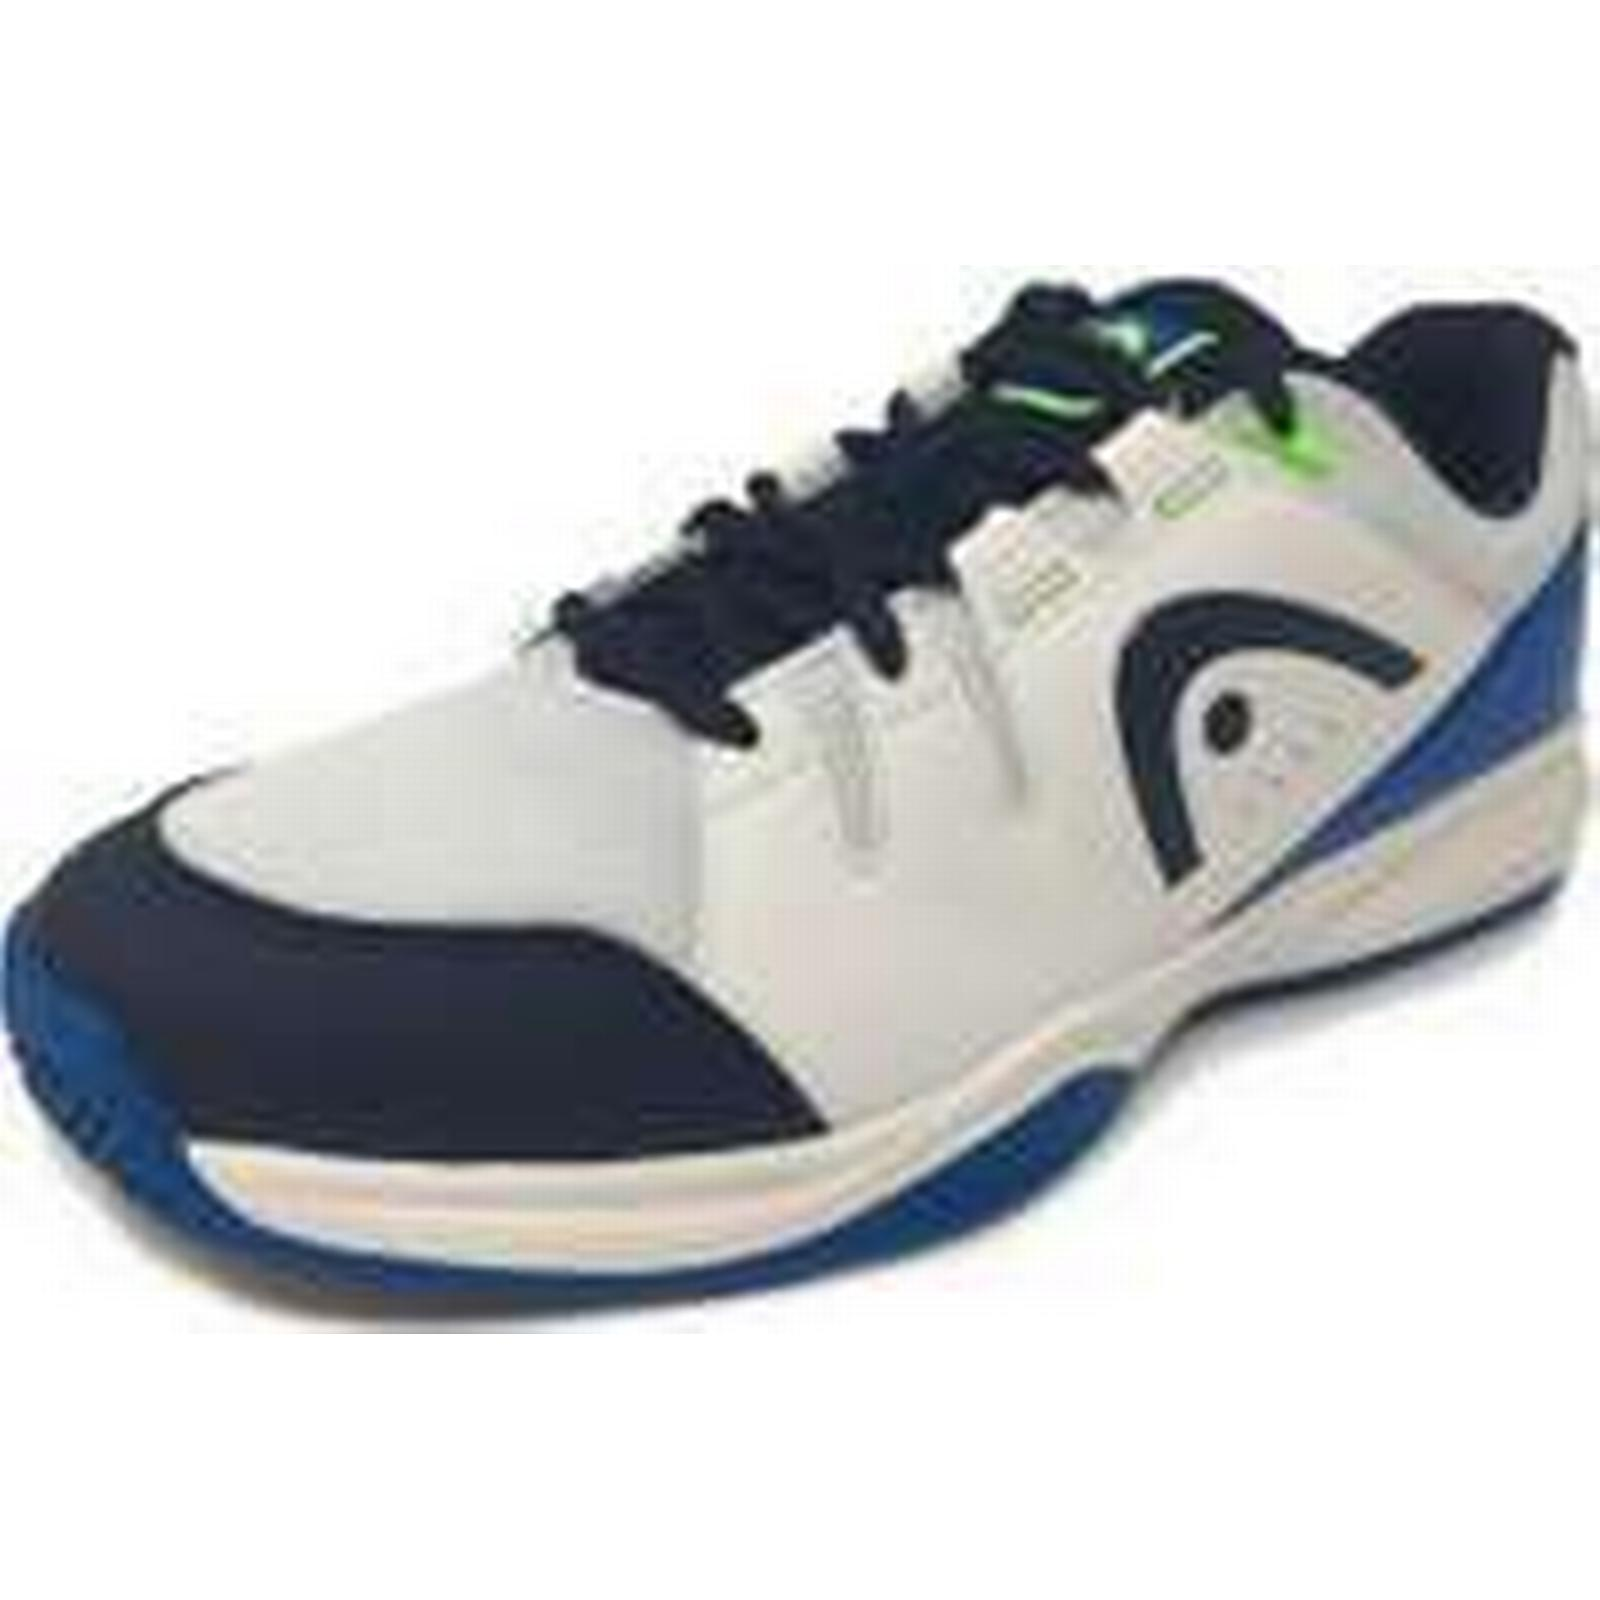 Head Grid 3.0 Indoor Court UK Shoes - White/Blue, 8 UK Court f776df